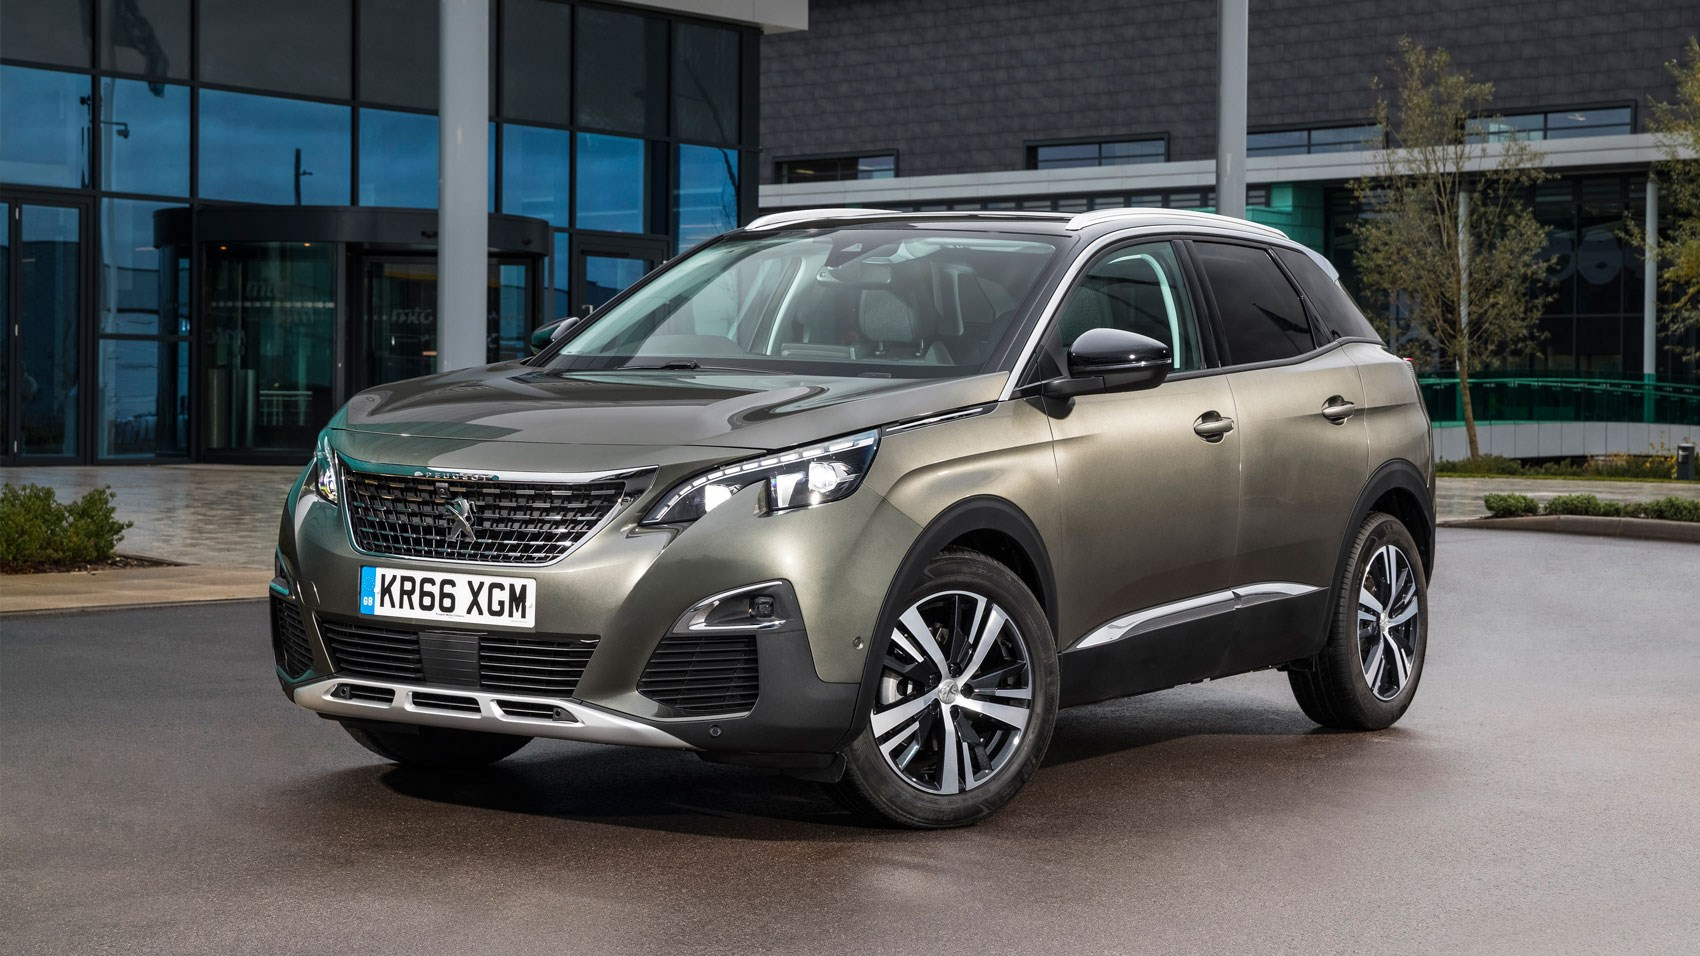 peugeot 3008 review a tech tastic crossover that s sure to allure gearopen. Black Bedroom Furniture Sets. Home Design Ideas